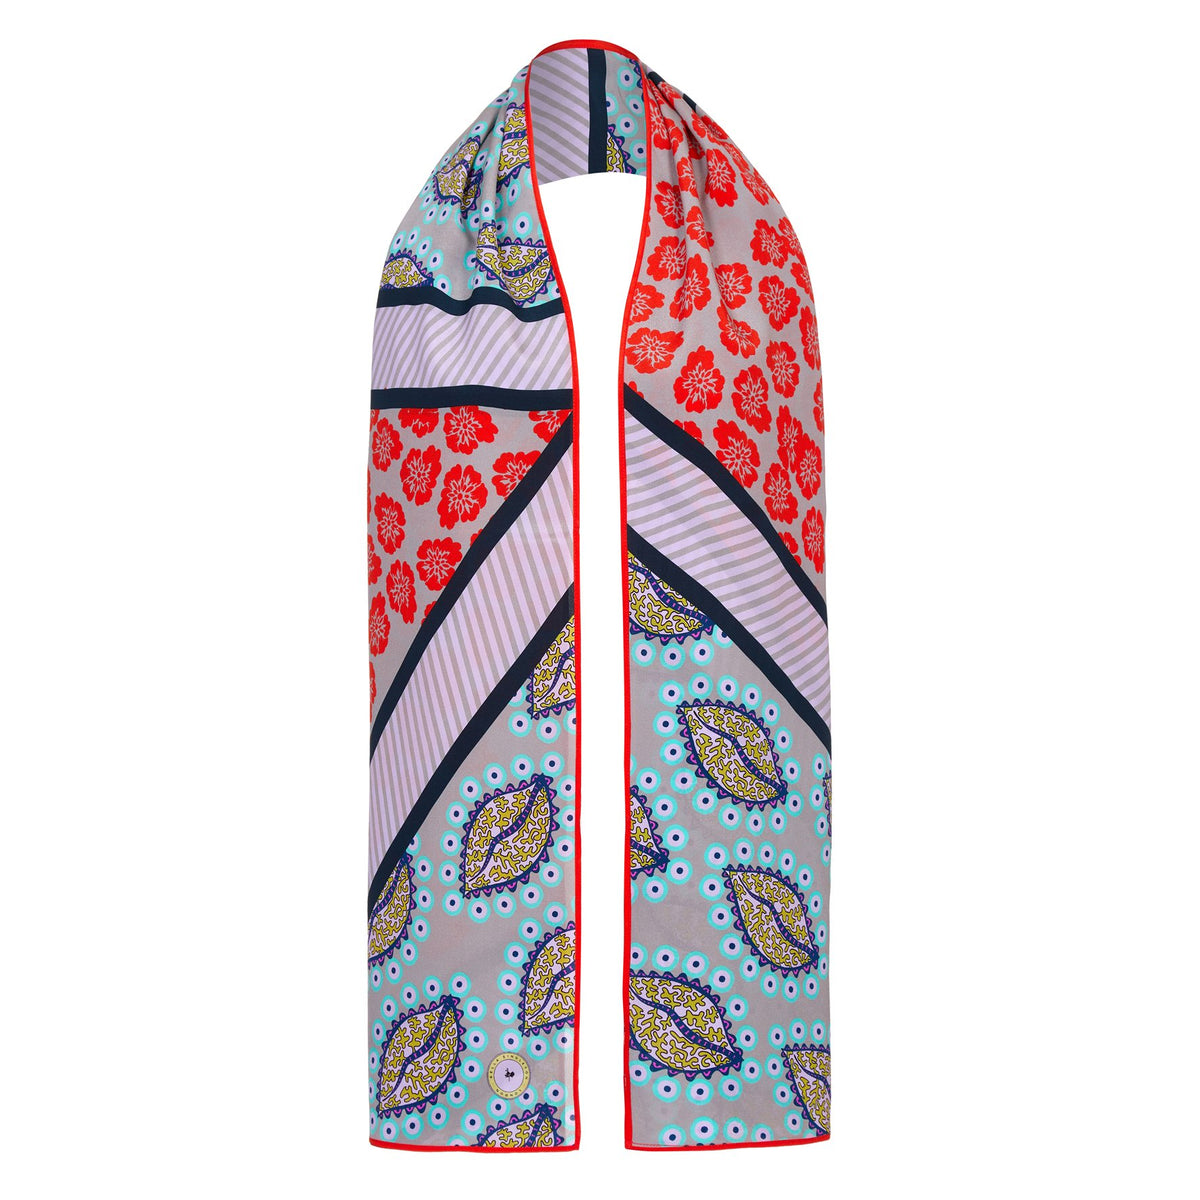 BS 043 Leaf print silk scarf in multi